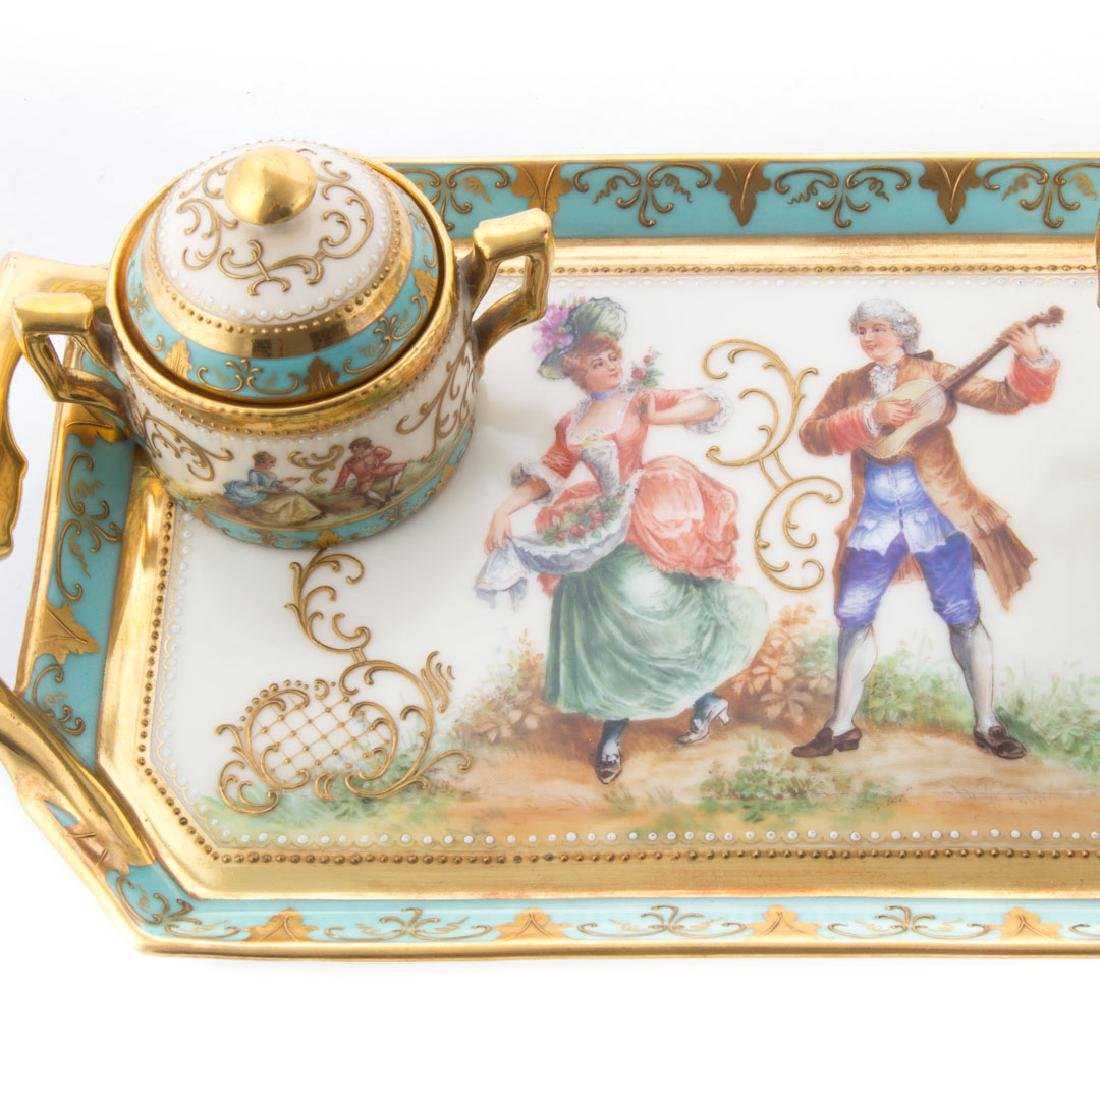 Dresden porcelain partial tea service - 2